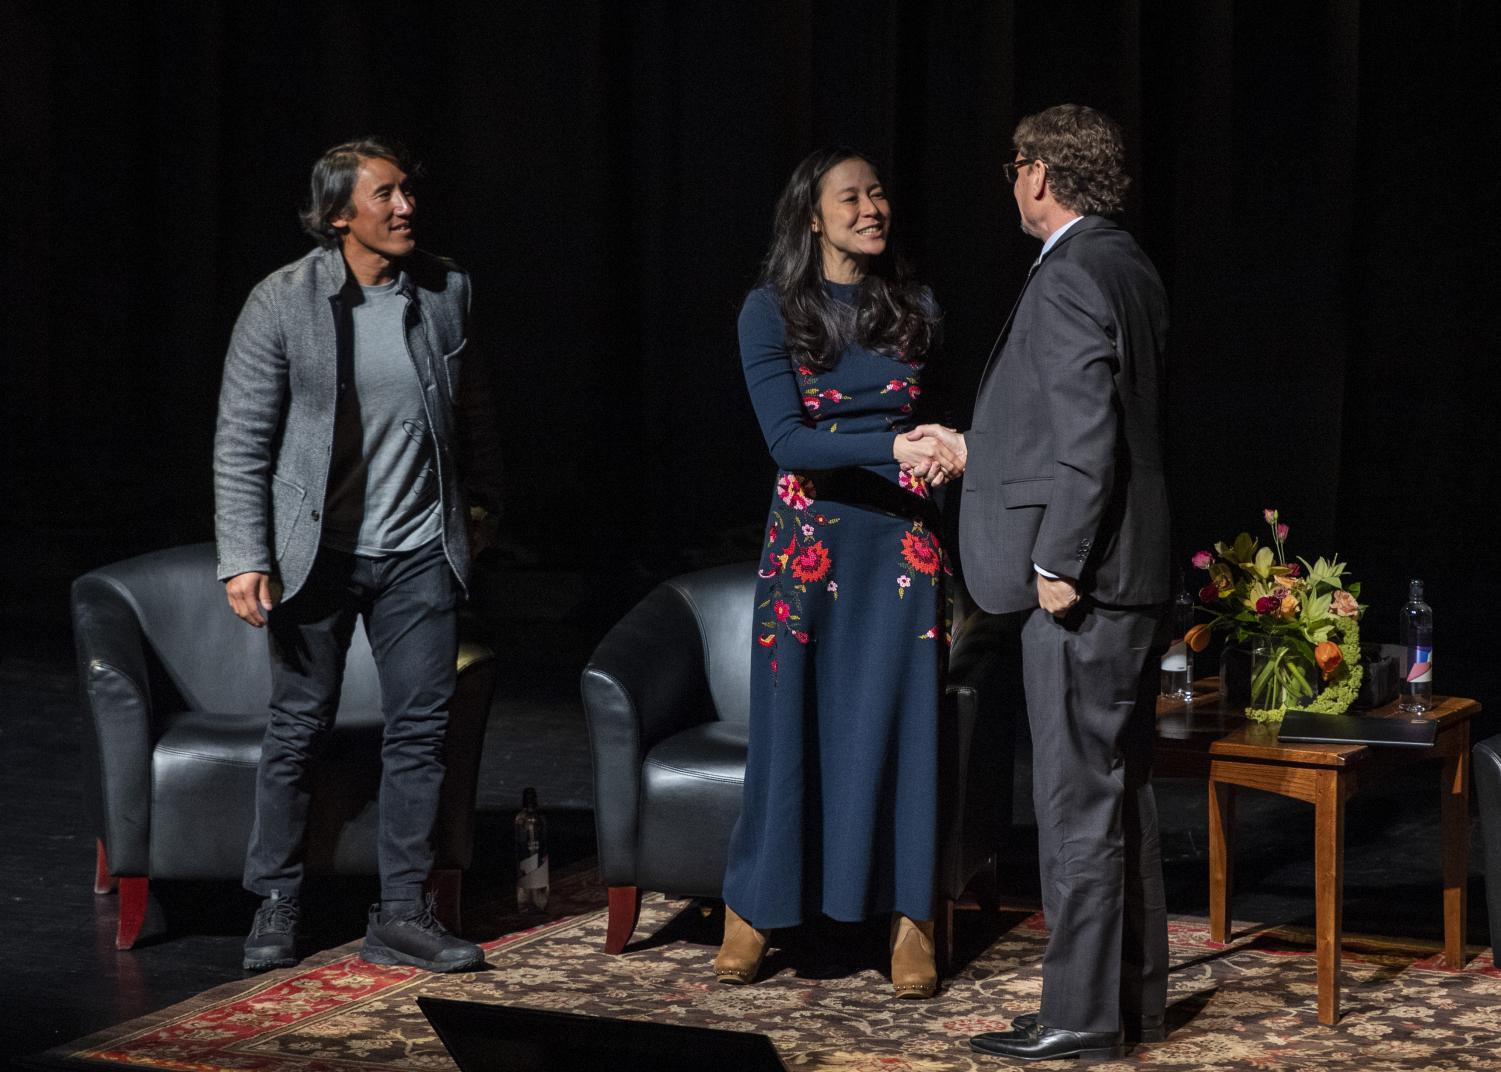 Elizabeth Chai Vasarhelyi and Jimmy Chin at the University of Utah MUSE Project (Photo by Kiffer Creveling | Daily Utah Chronicle)